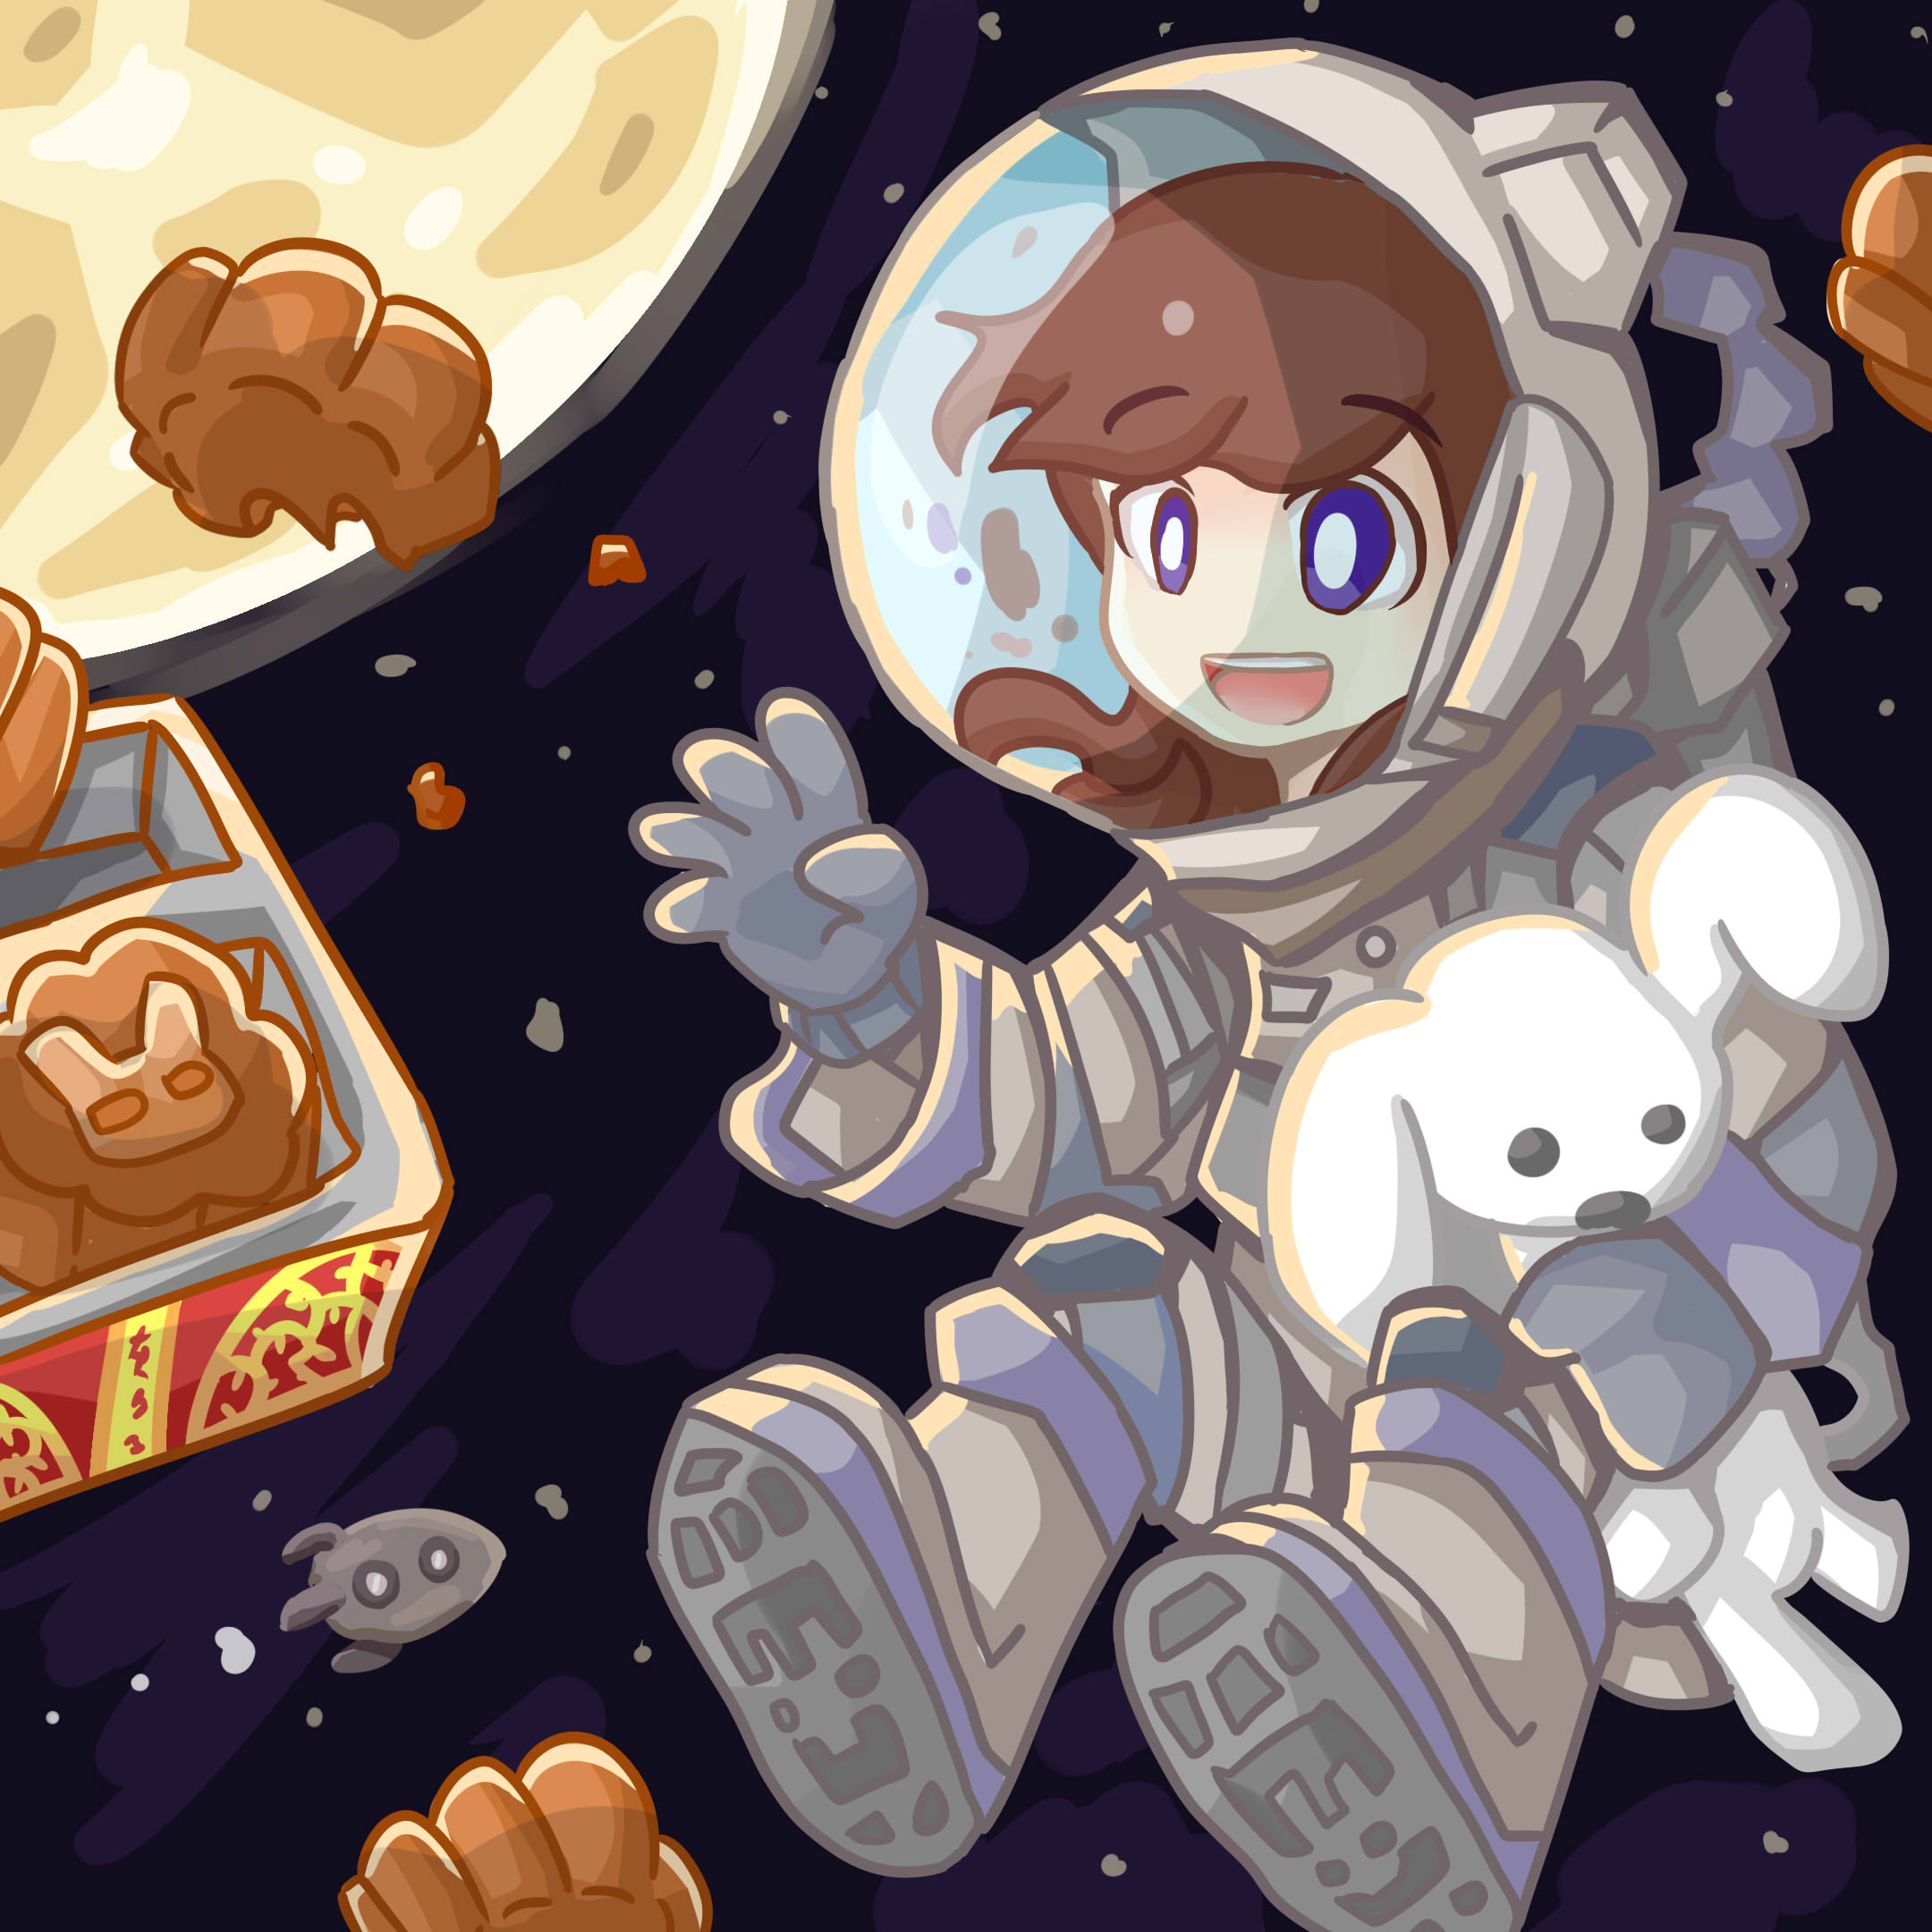 Outer Space Mooncake festival